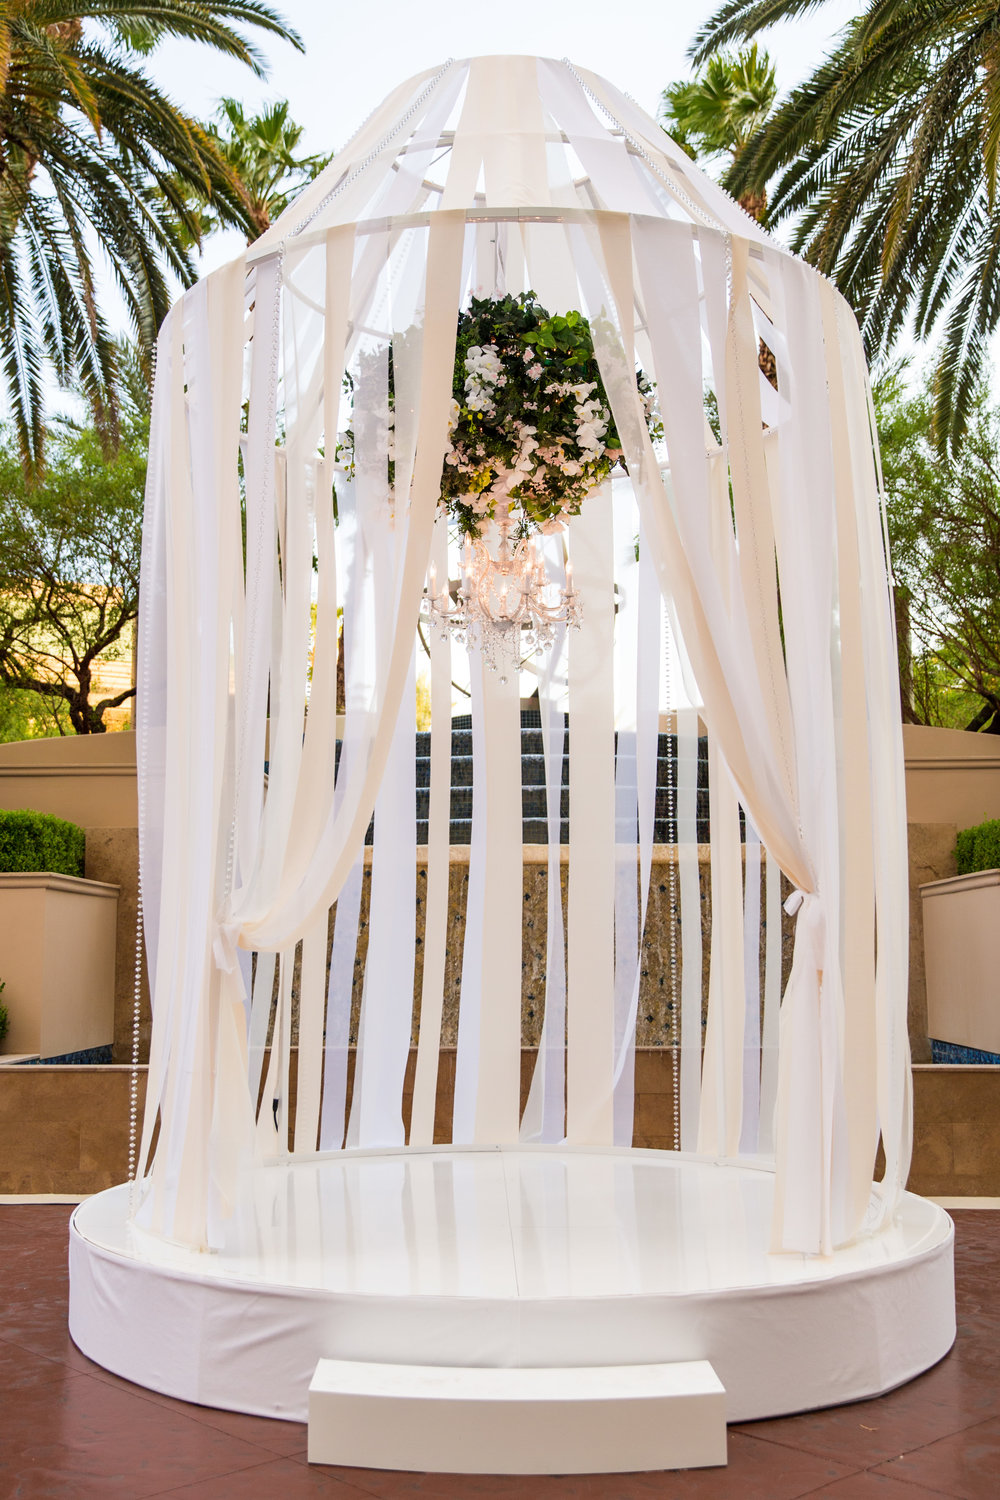 The wedding ceremony took place in a larger than life birdcage wrapped in ribbon with a floral chandelier hanging in the center.  Wedding Planning by  Andrea Eppolito Events   ·  Photography by  Shandro Photo    ·  Wedding Venue  Four Seasons Las Vegas   ·  Floral and Decor by  Destination by Design   ·  Chandeliers and Lighting by  LED Unplugged